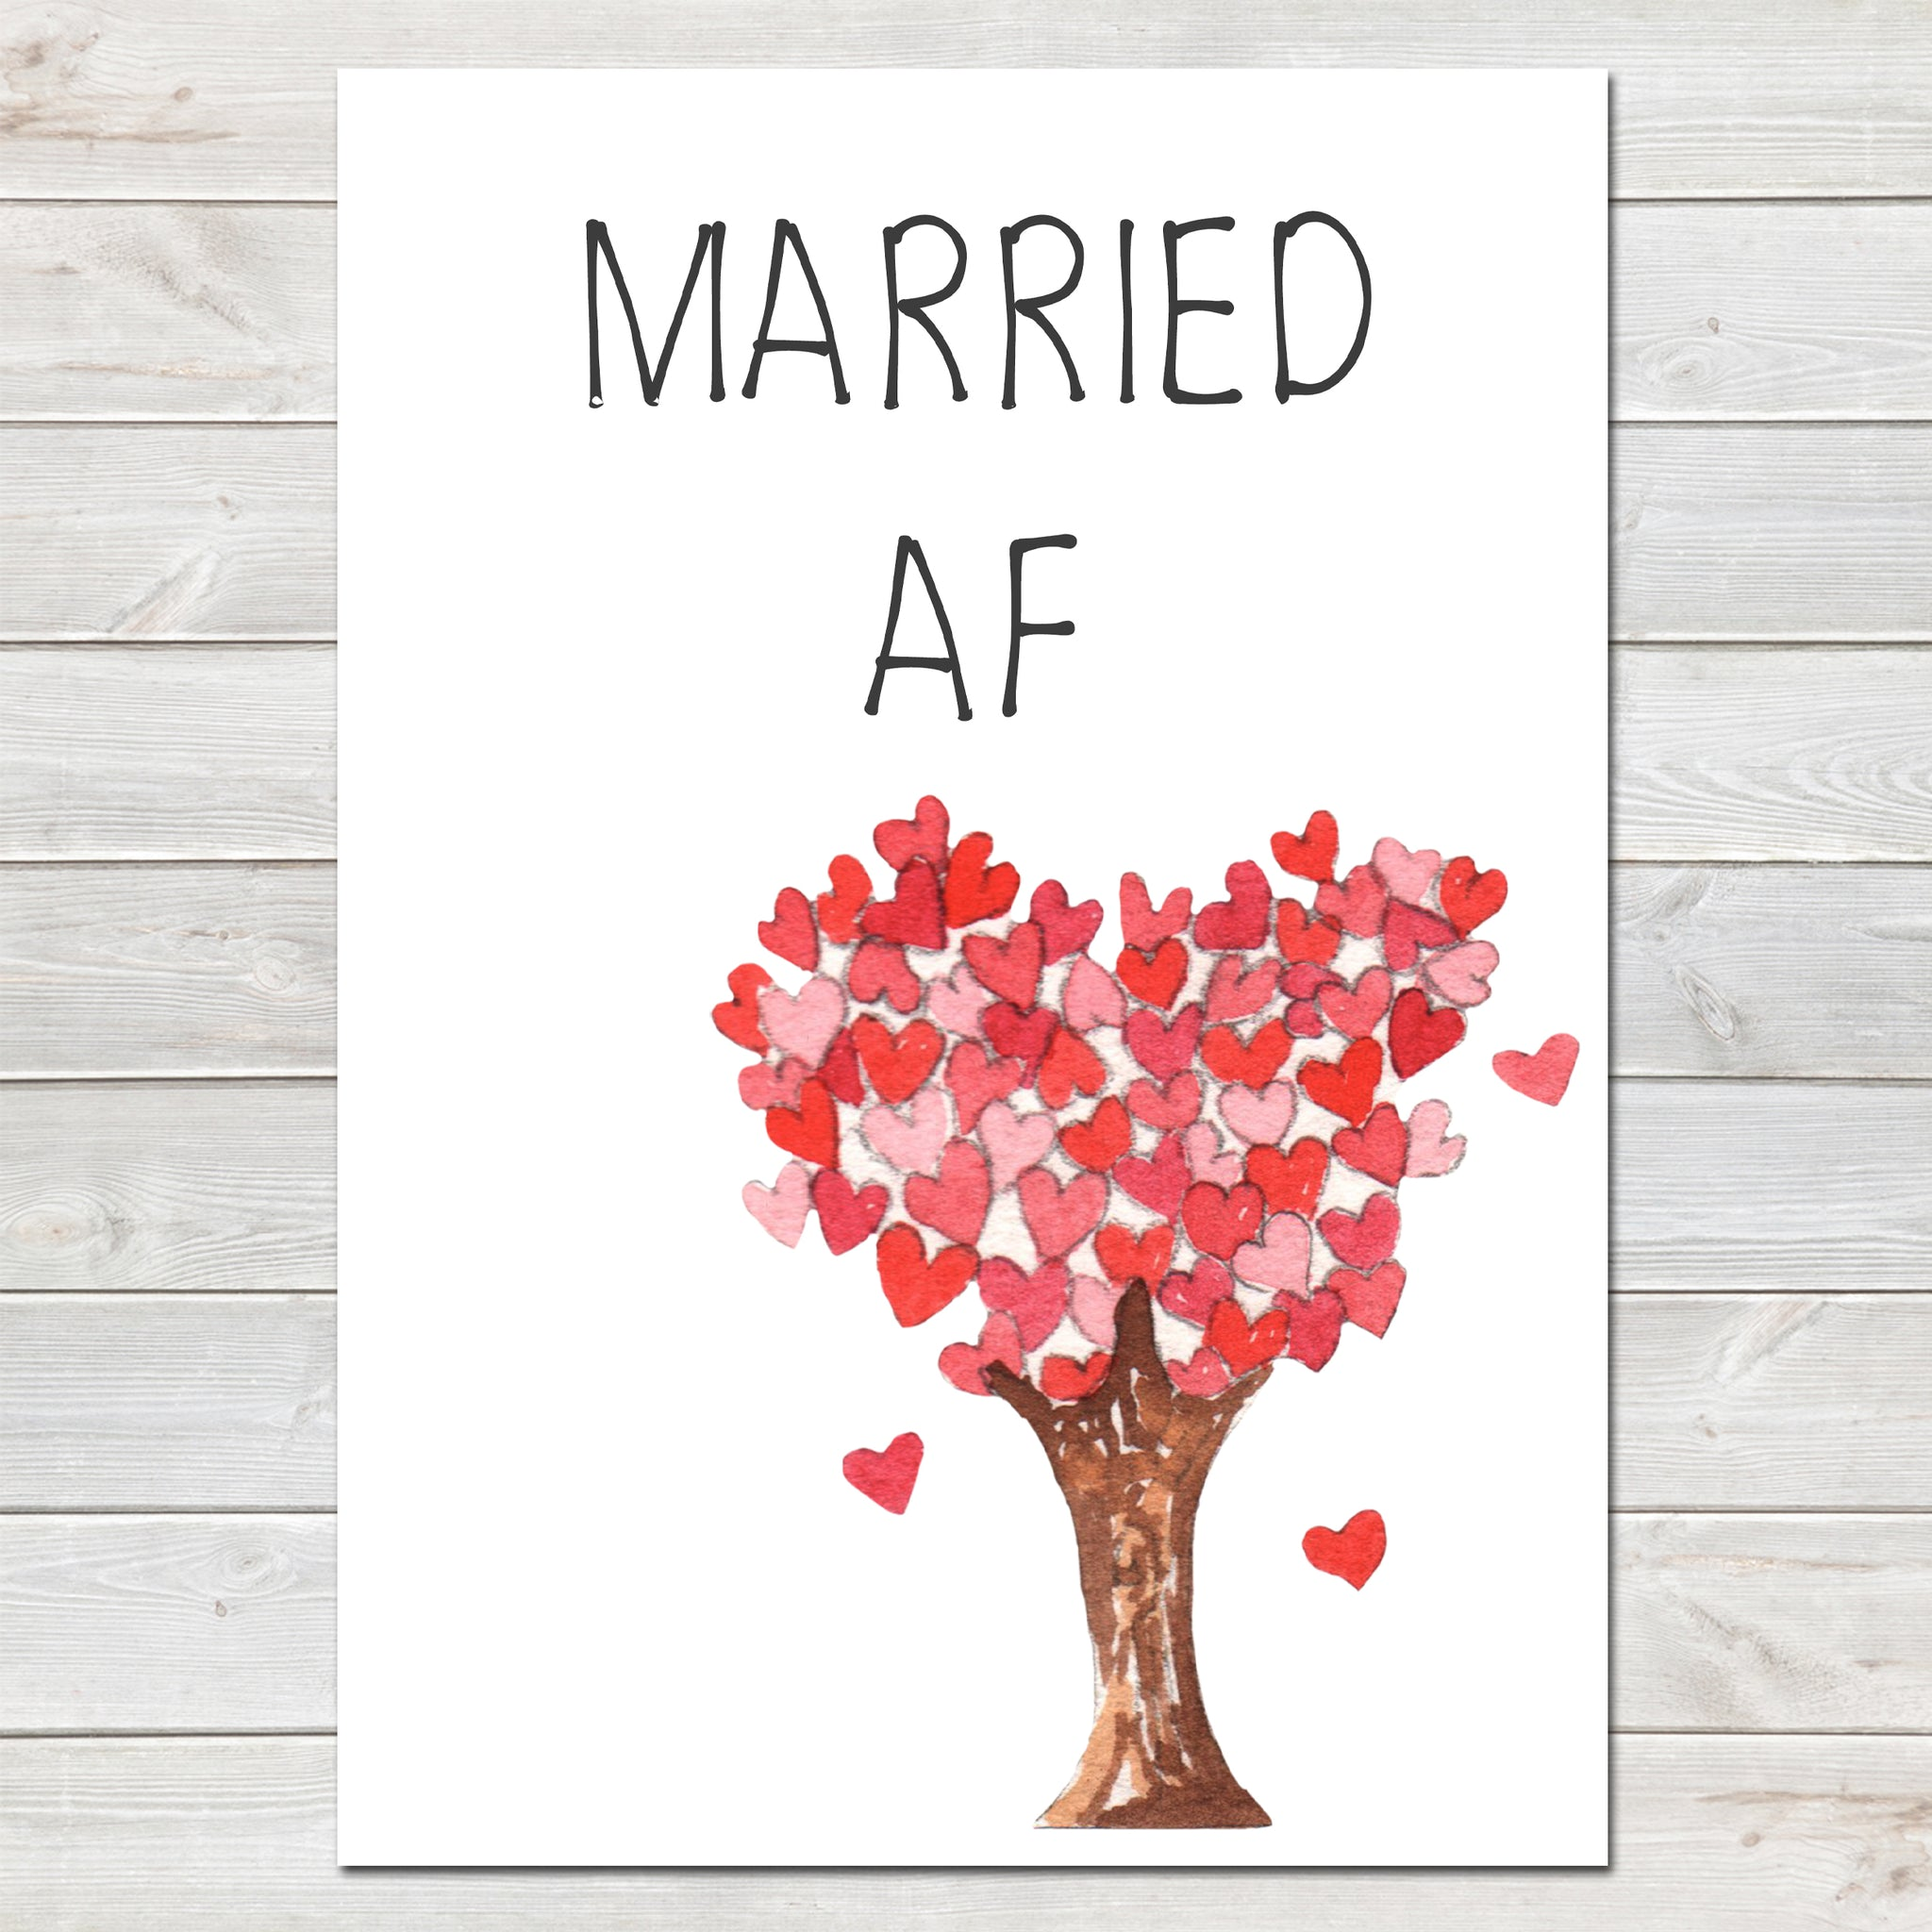 Wedding Party Married AF (As F***) Funny Tree of Hearts Poster / Photo Prop / Sign